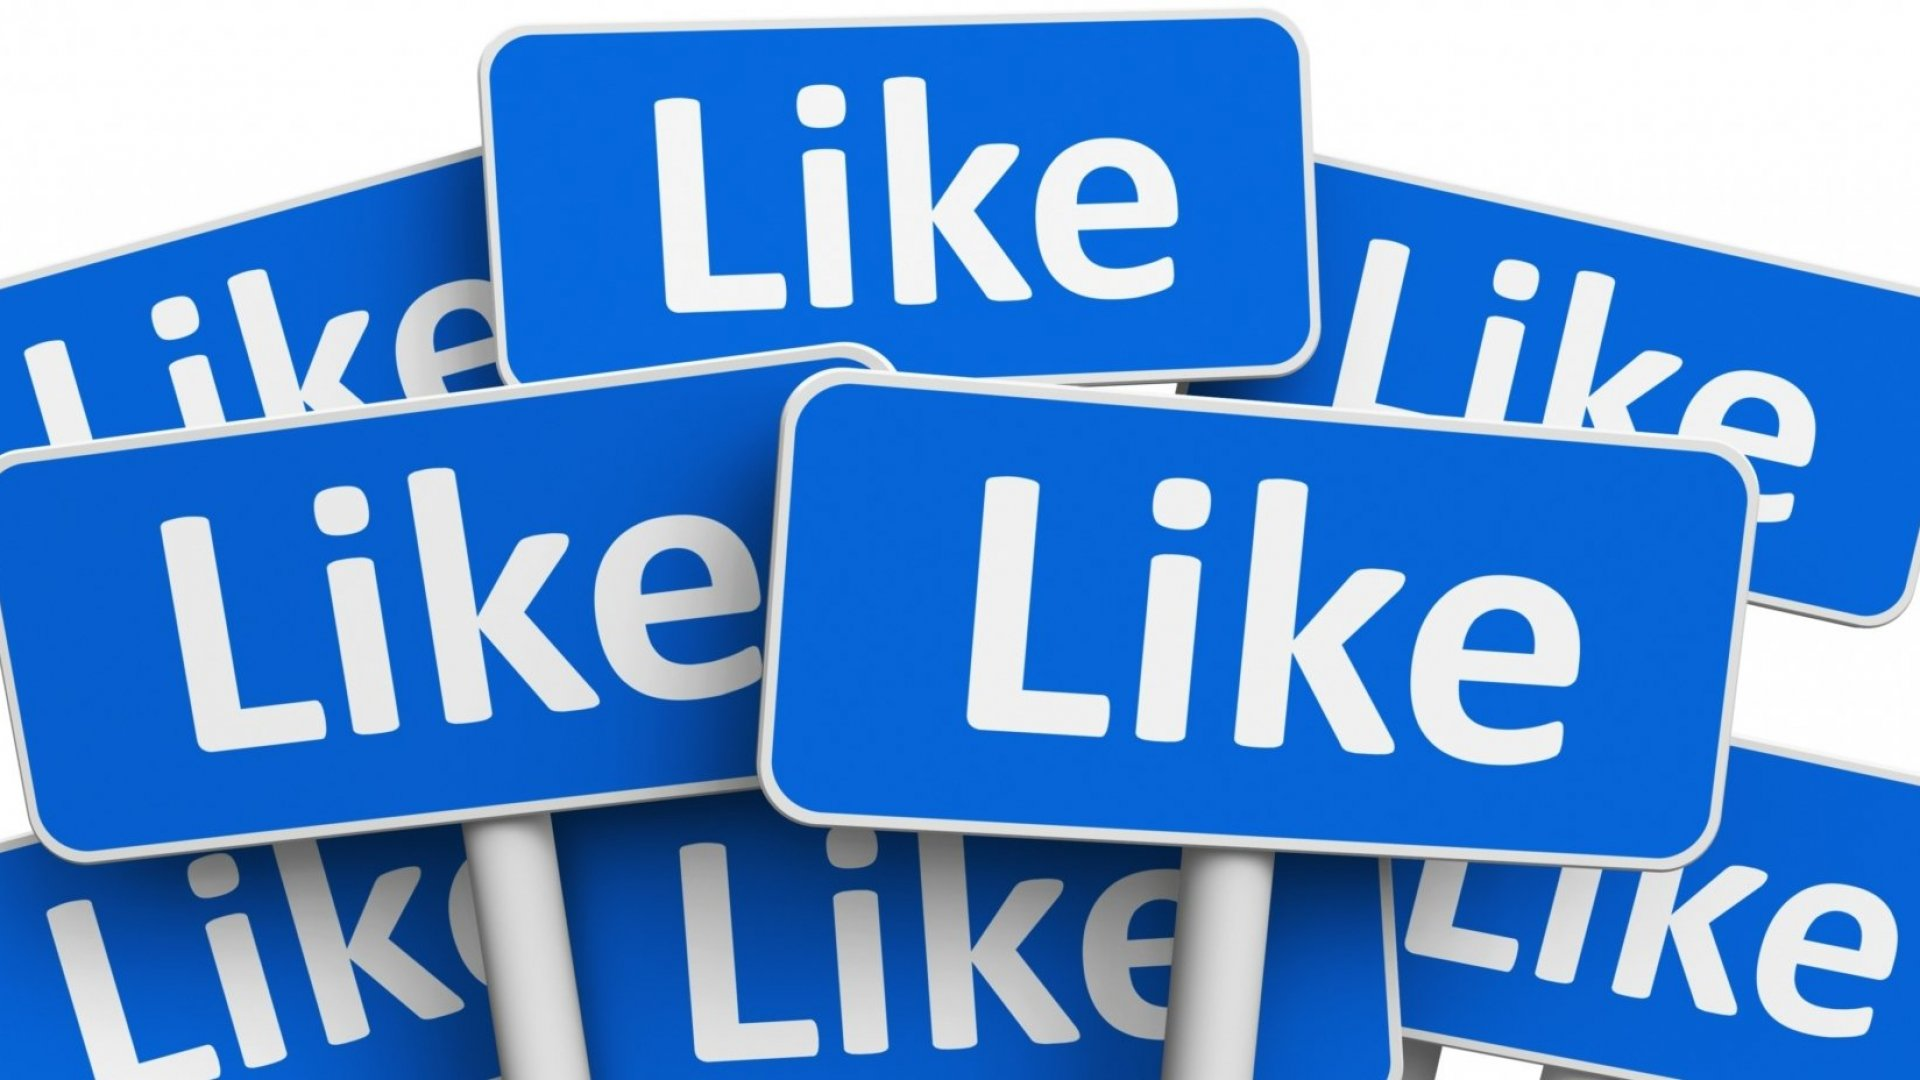 4 Top Tips to Improve Your Social Media Strategy